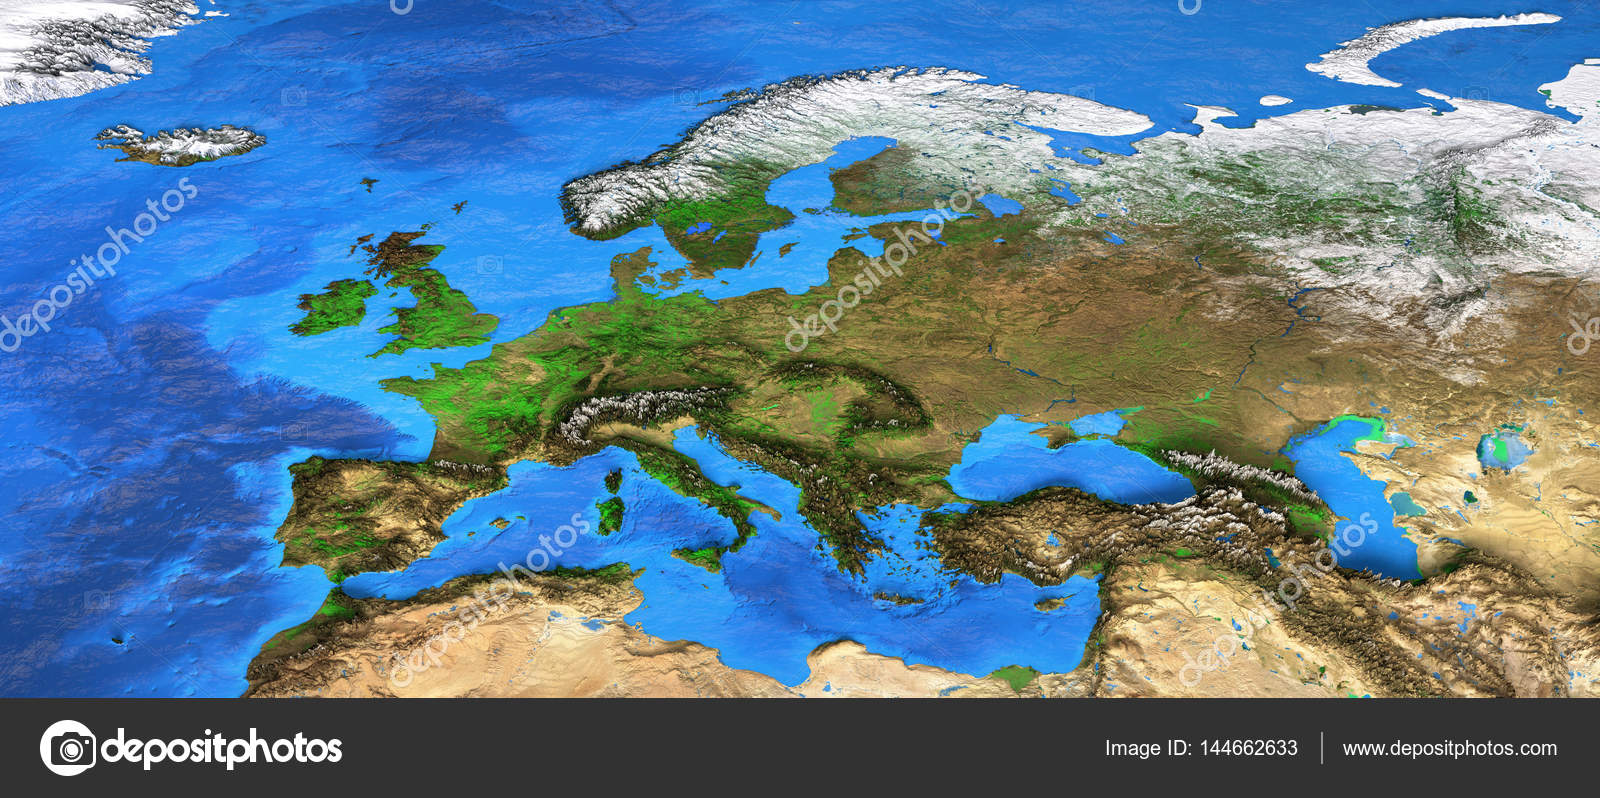 High resolution world map focused on europe stock photo titoonz detailed satellite view of the earth and its landforms europe map elements of this image furnished by nasa photo by titoonz gumiabroncs Choice Image